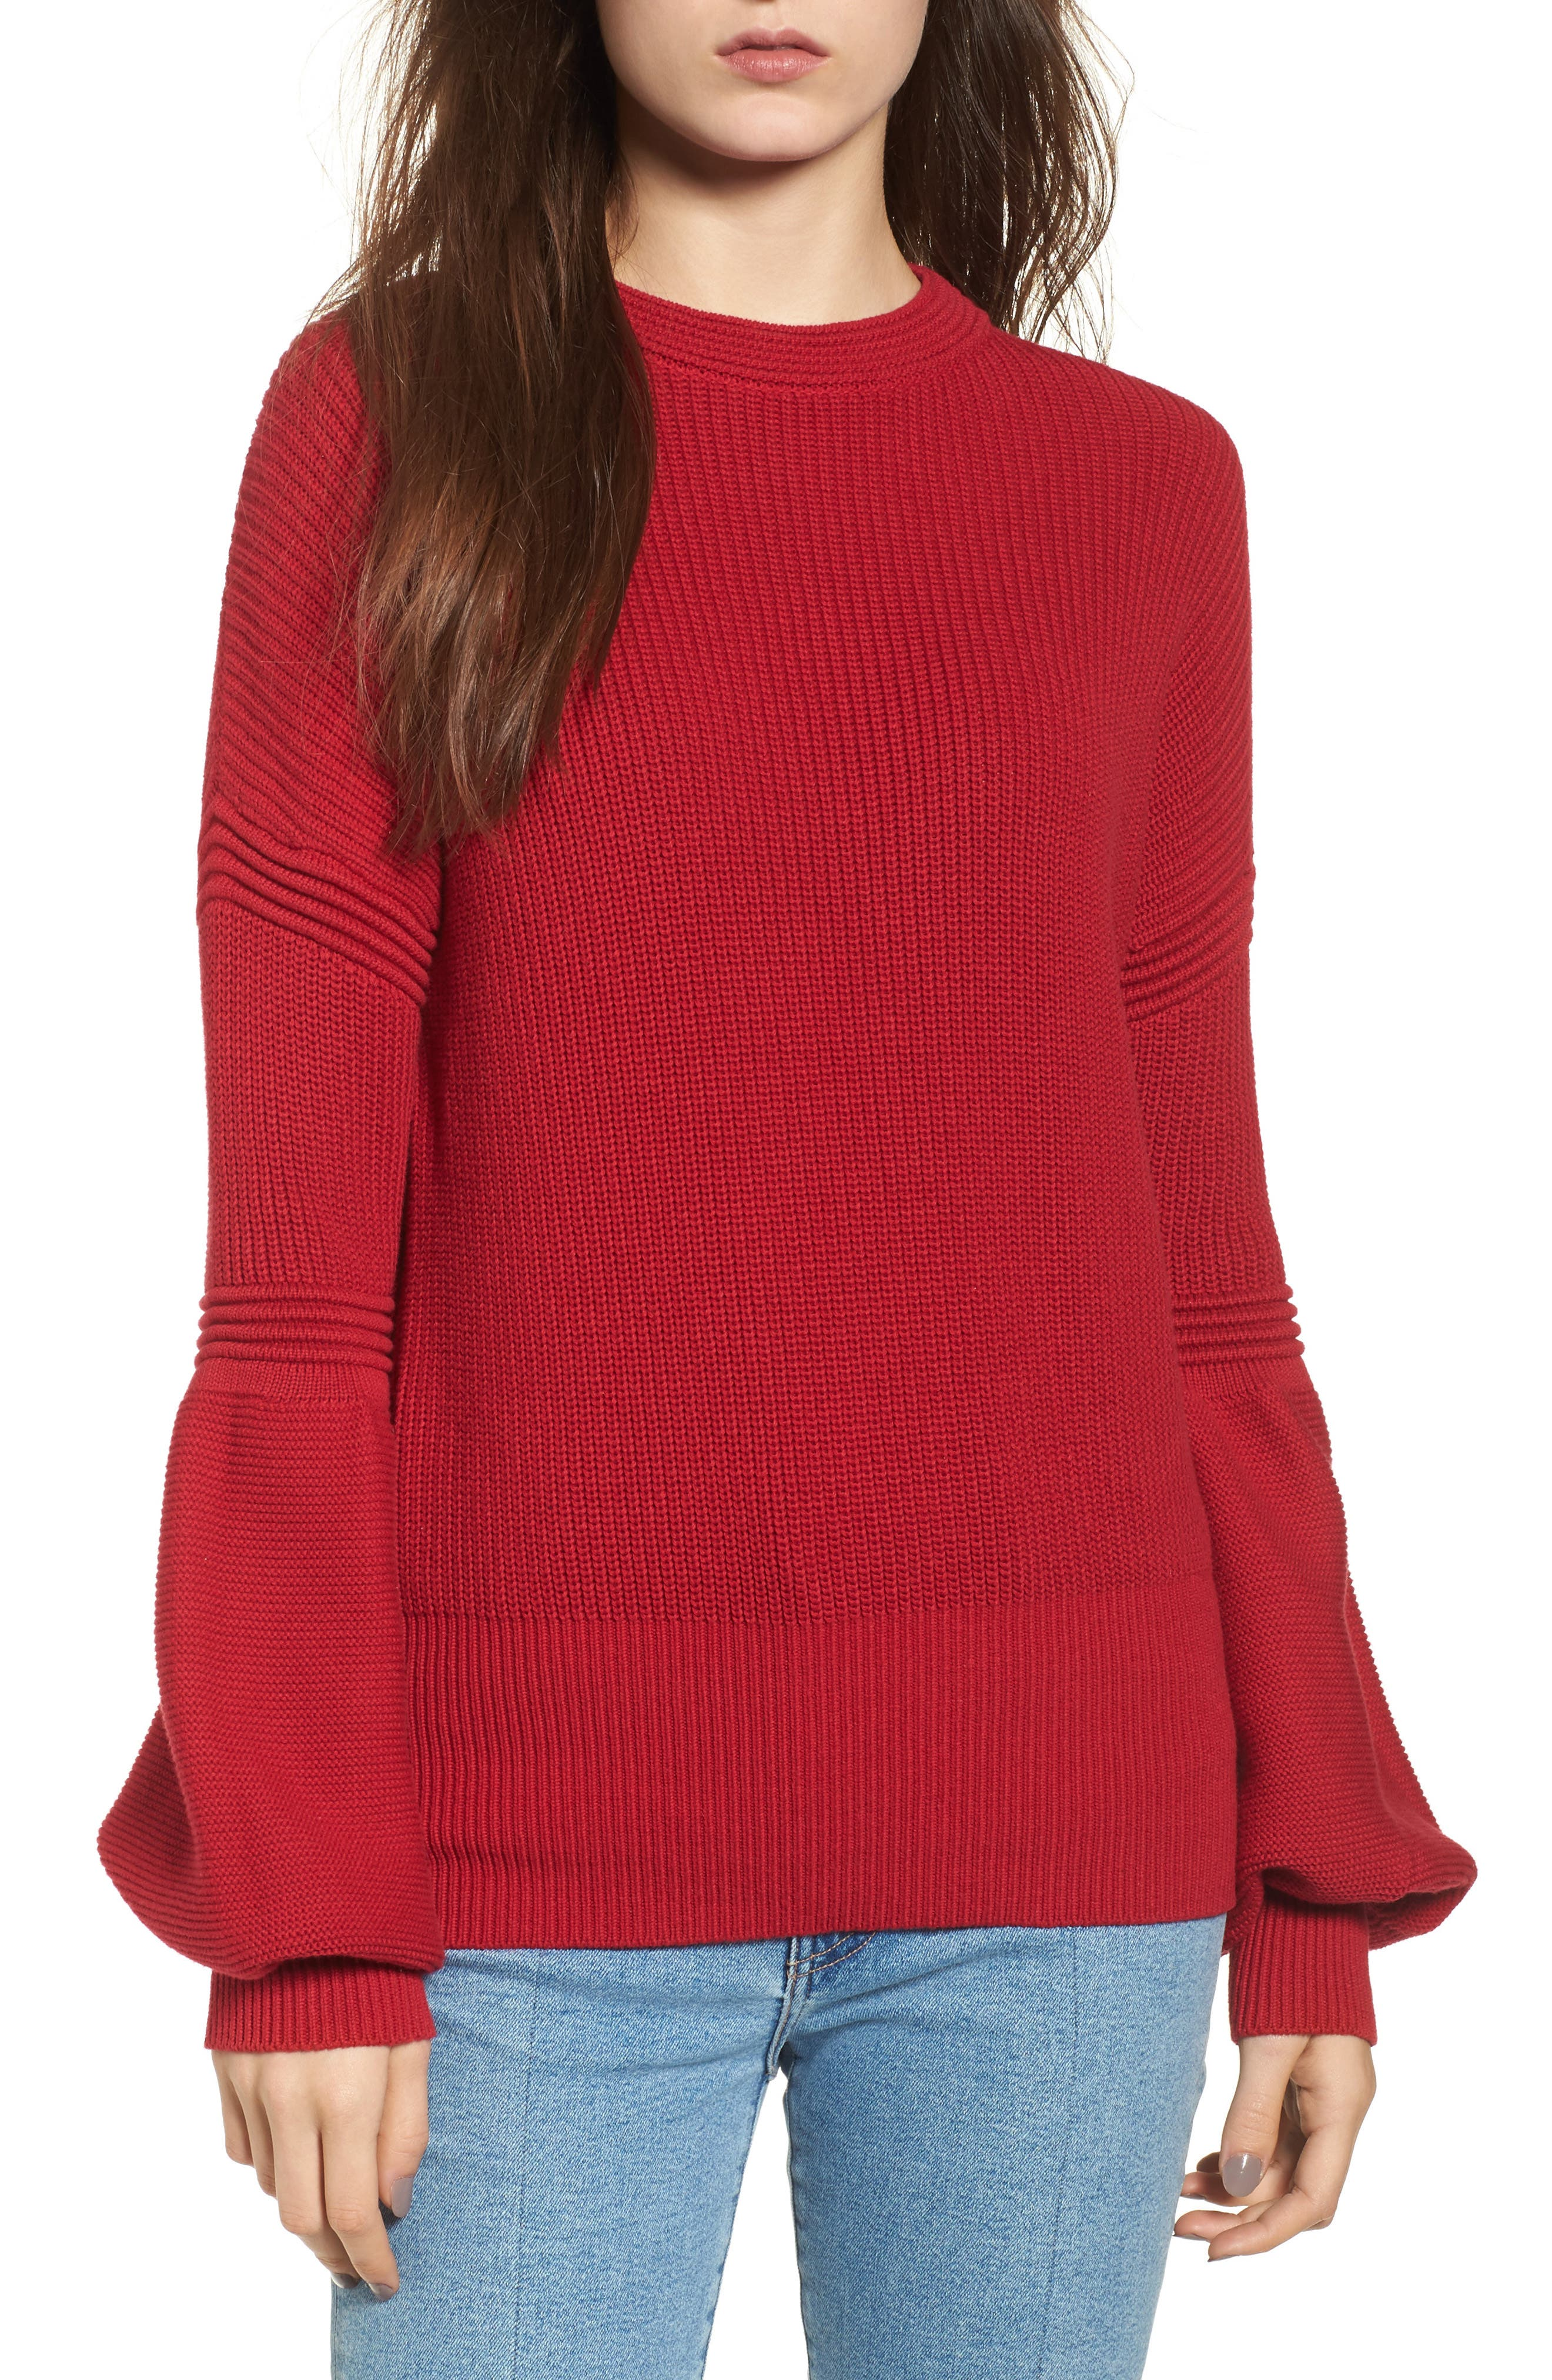 Sculpture Puff Sleeve Sweater,                         Main,                         color, Red